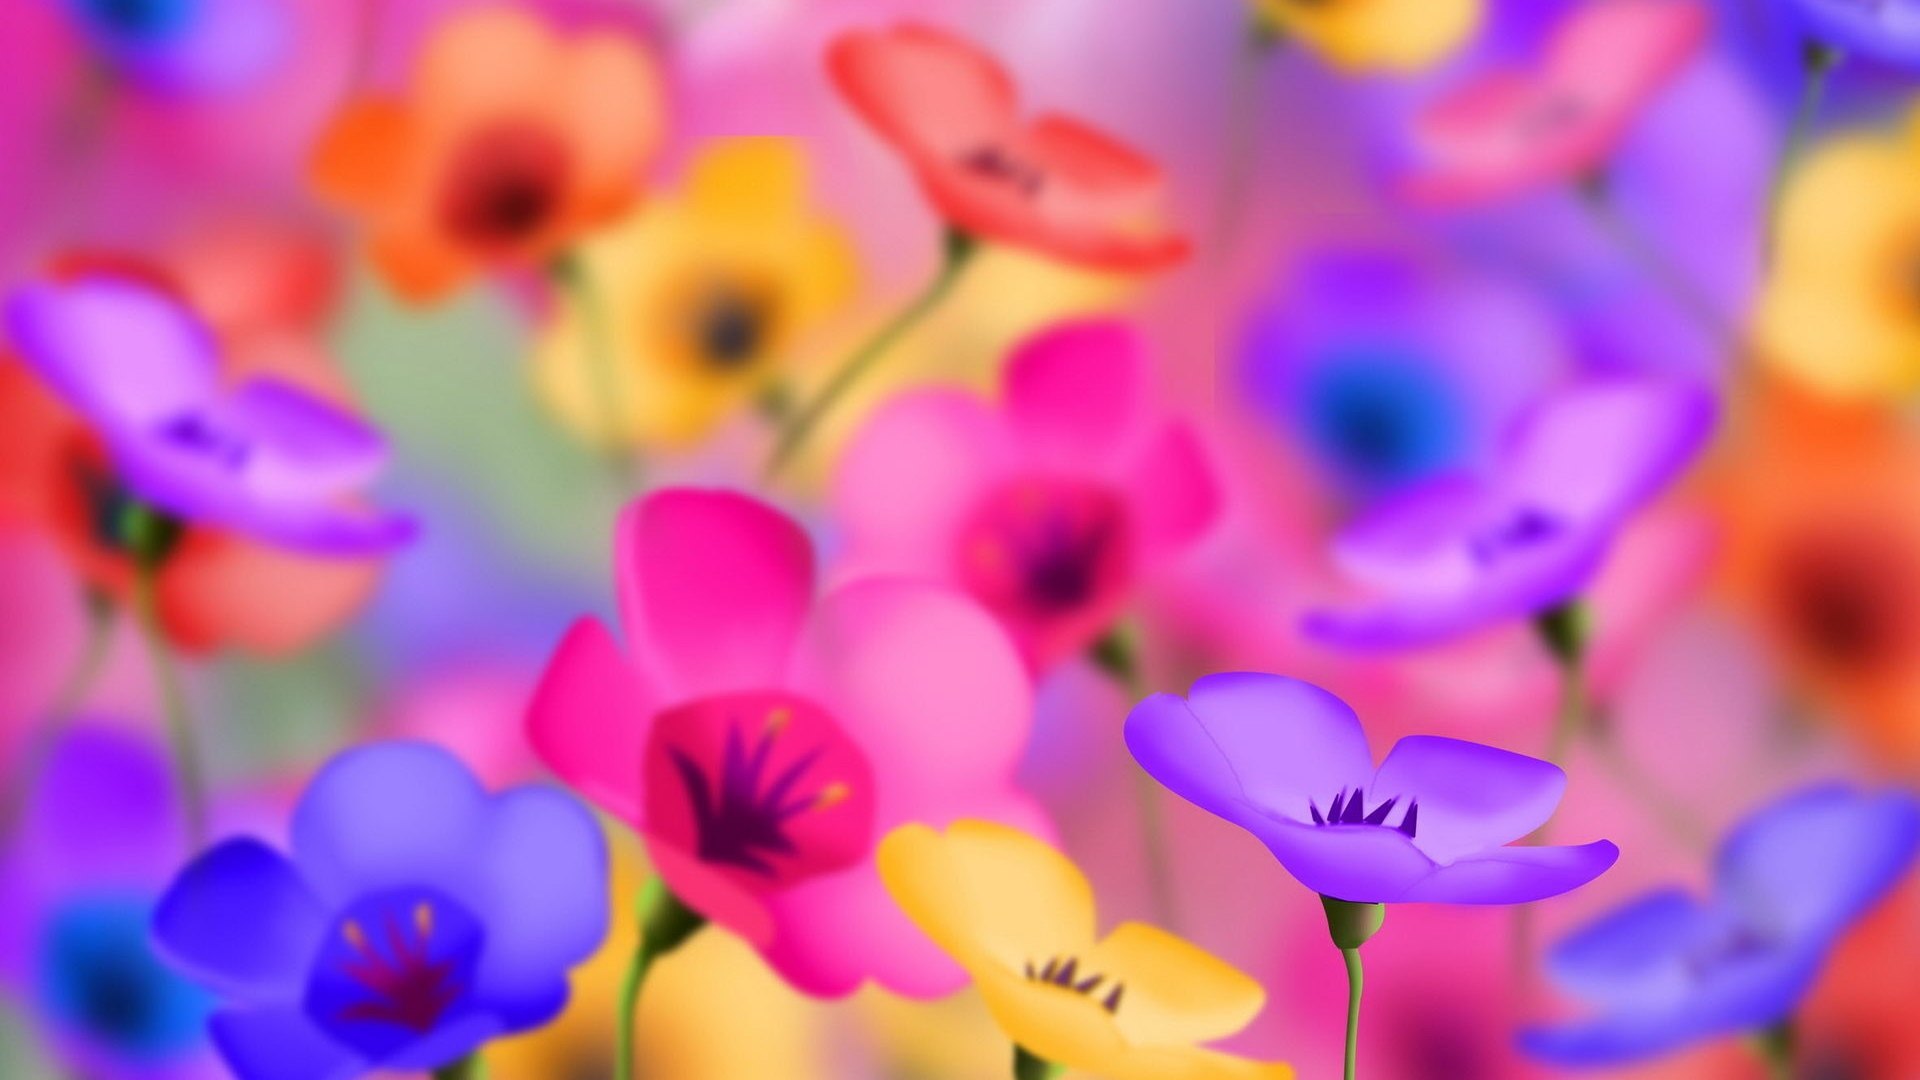 Full HD Wallpapers Of Flowers